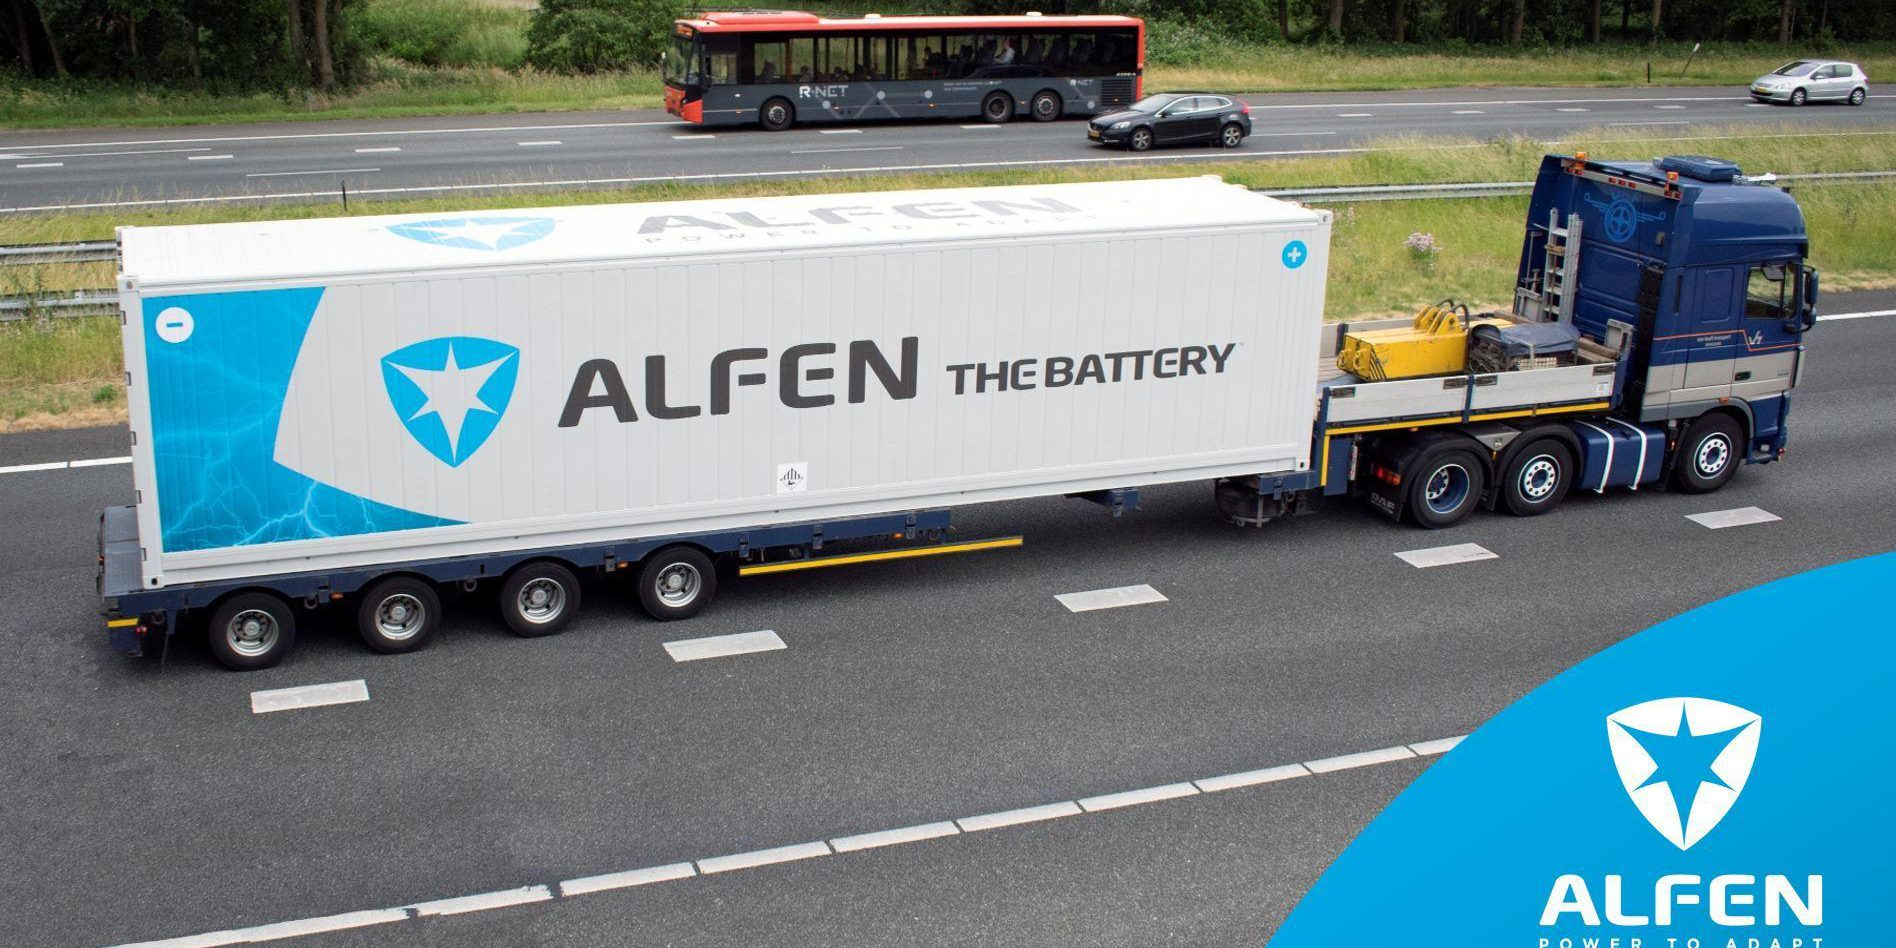 Smart shipping container offers power grid resilience with 'self healing' capability